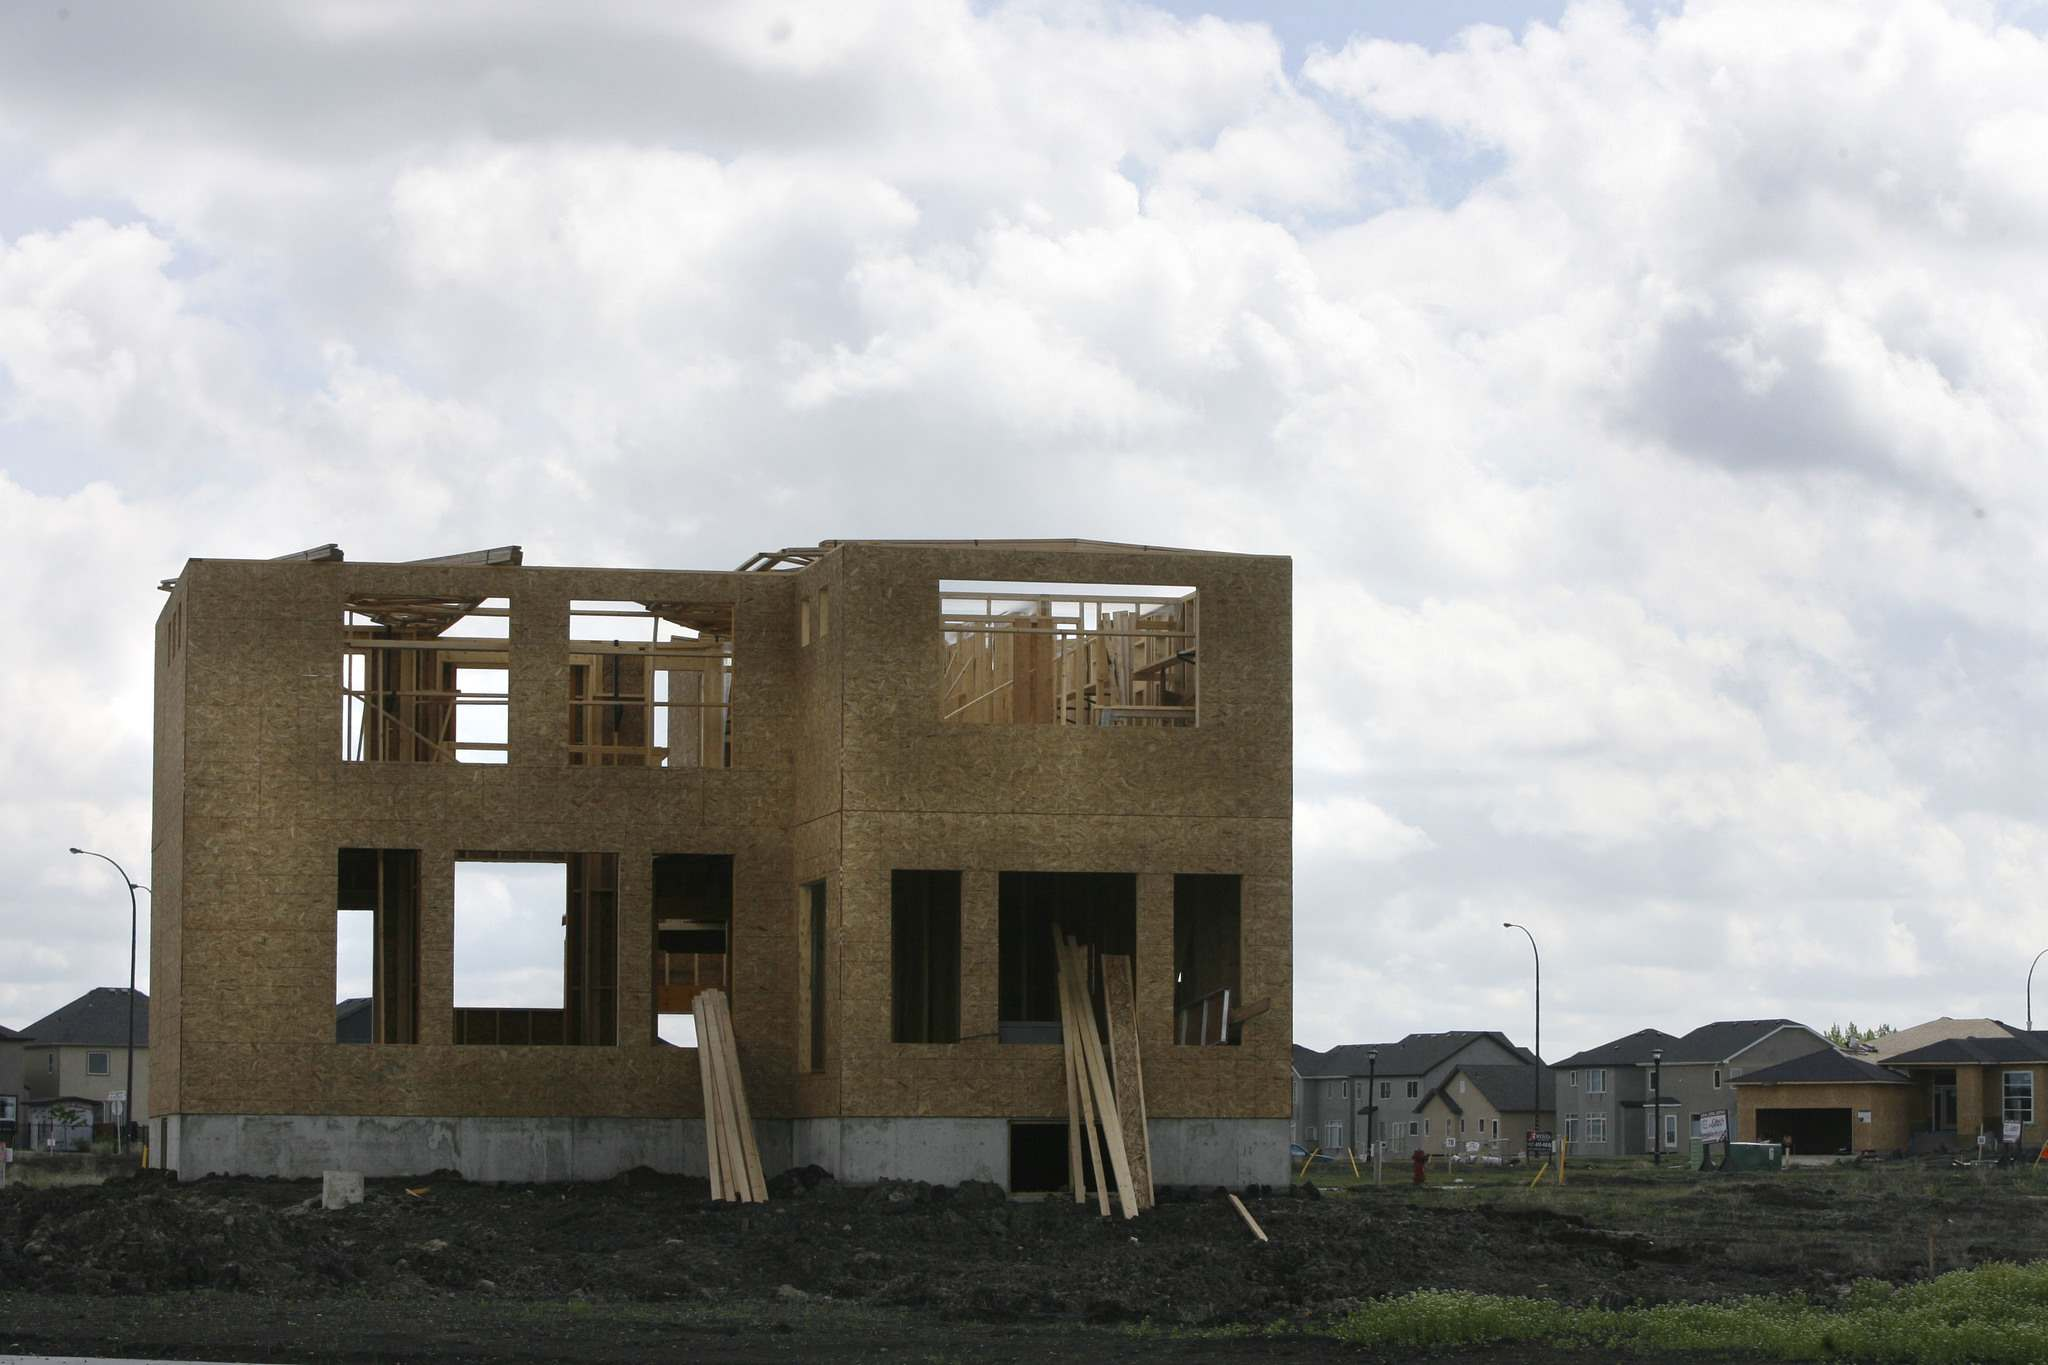 Pace of new home construction eased last month, CMHC says